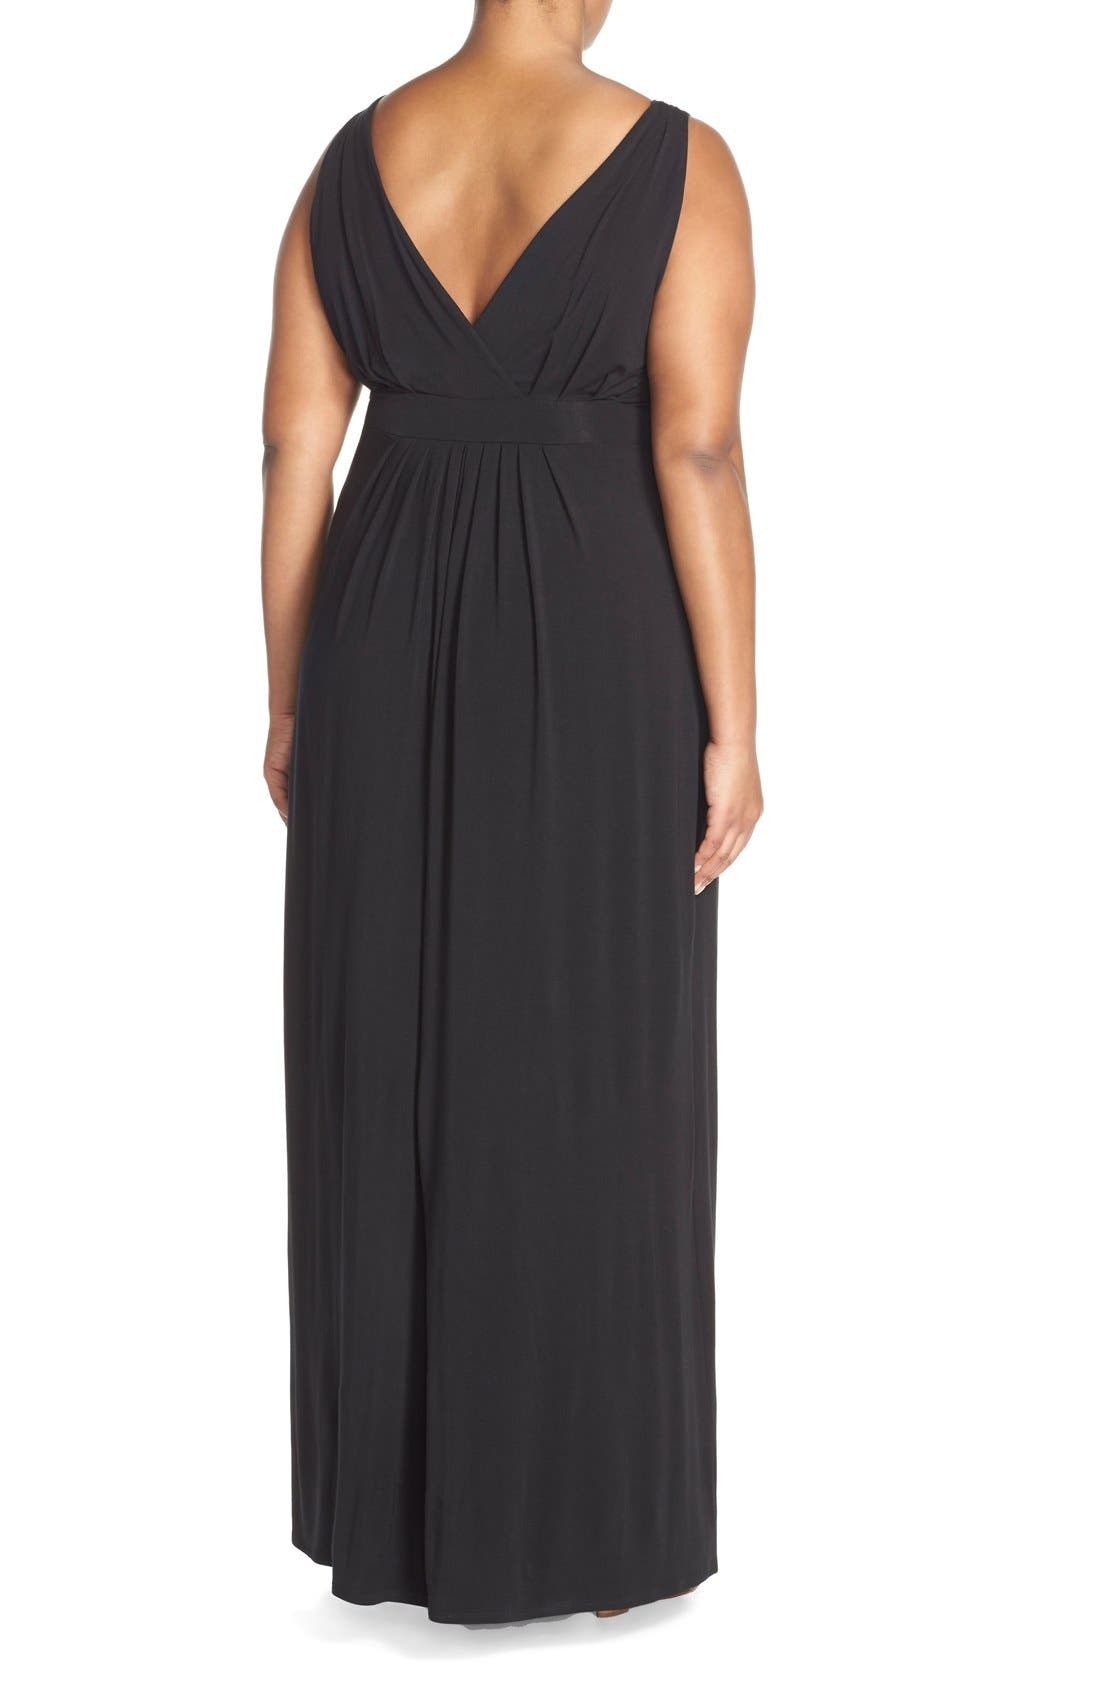 Chloe Empire Waist Maxi Dress,                             Alternate thumbnail 2, color,                             001